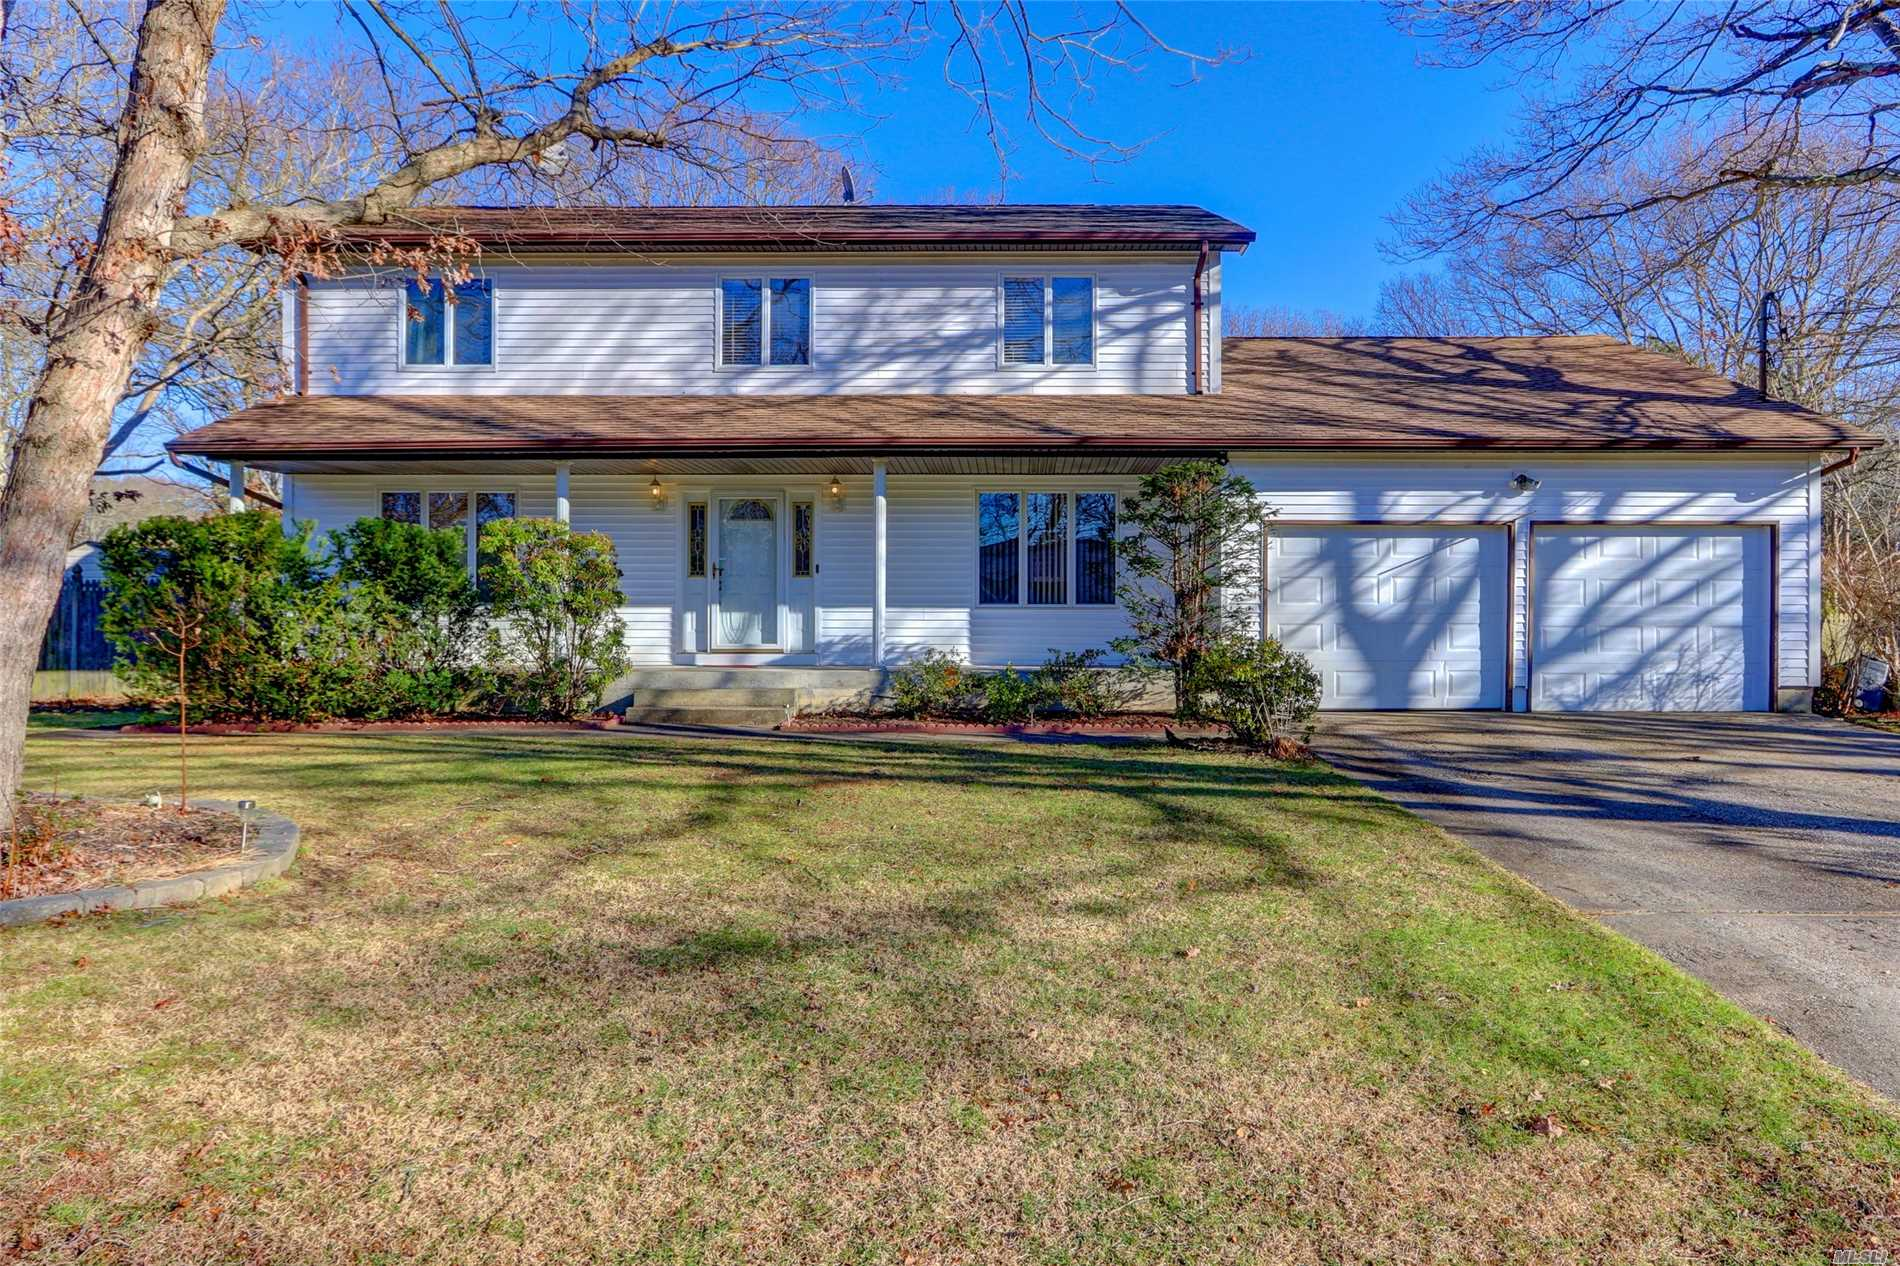 Spacious Colonial Featuring Over 4000 Sq Ft Of Living Space. Very Low Taxes For The Size Of The House. All Cos In Place Including Finished Basement. Huge Unfinished Bonus Rm Over Garage